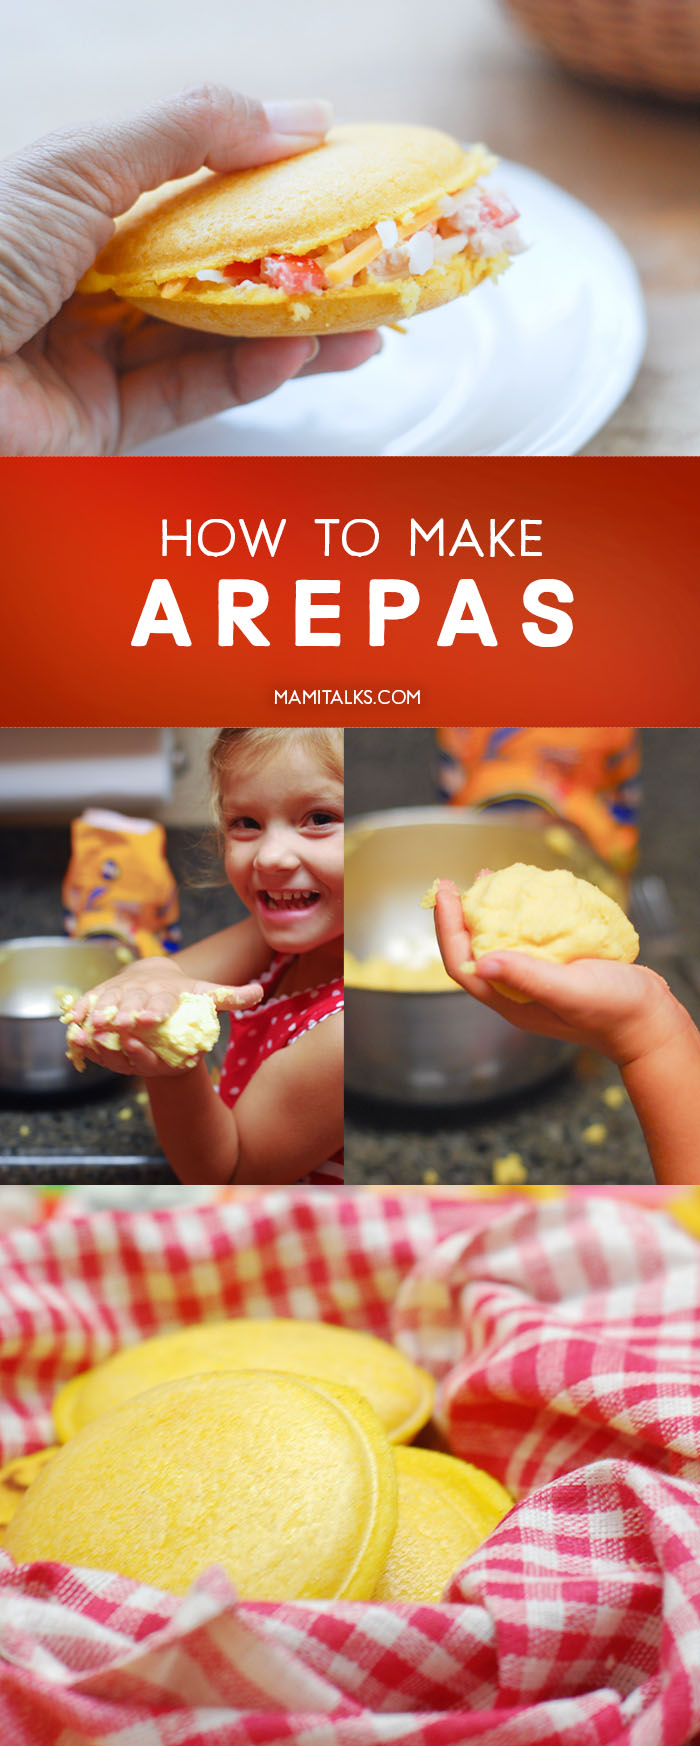 Arepa filled with tuna salad and cheese, little girl making arepas. -MamiTalks.com